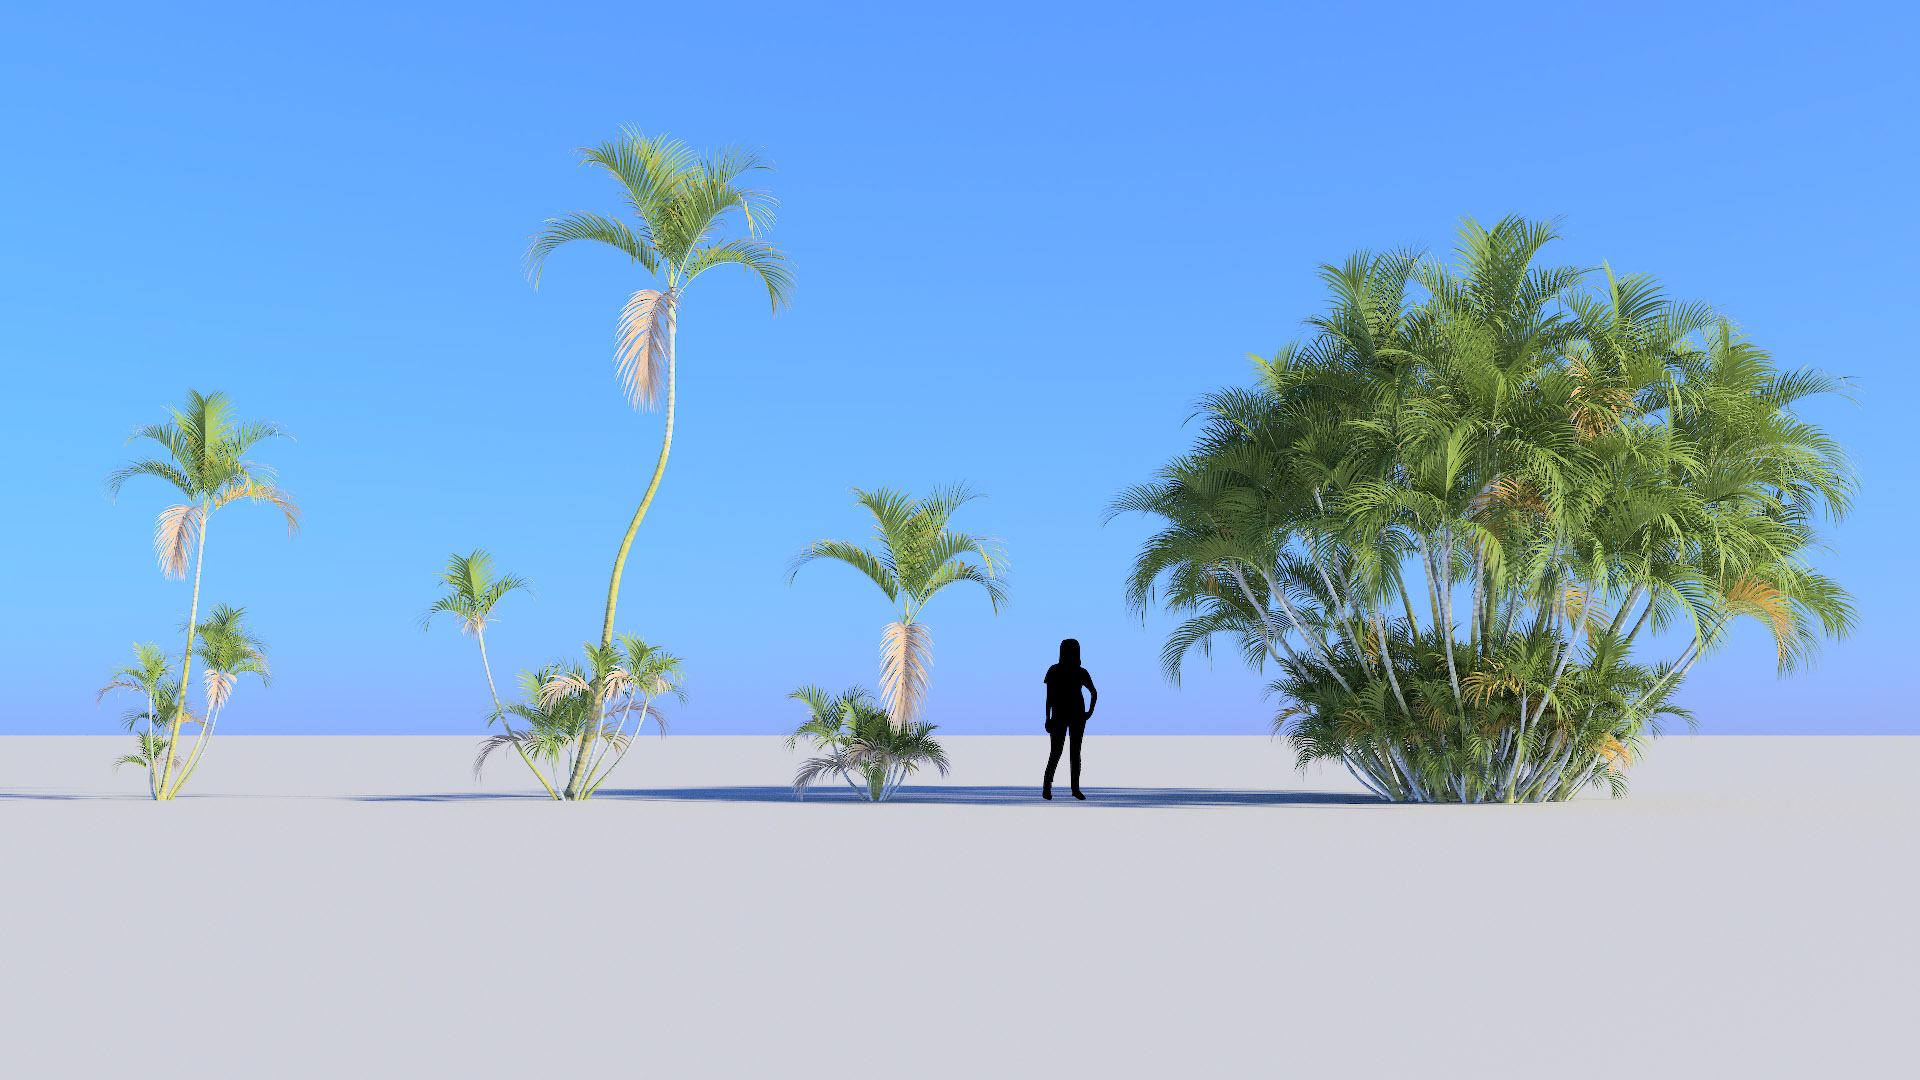 3D model of the Butterfly palm Dypsis lutescens